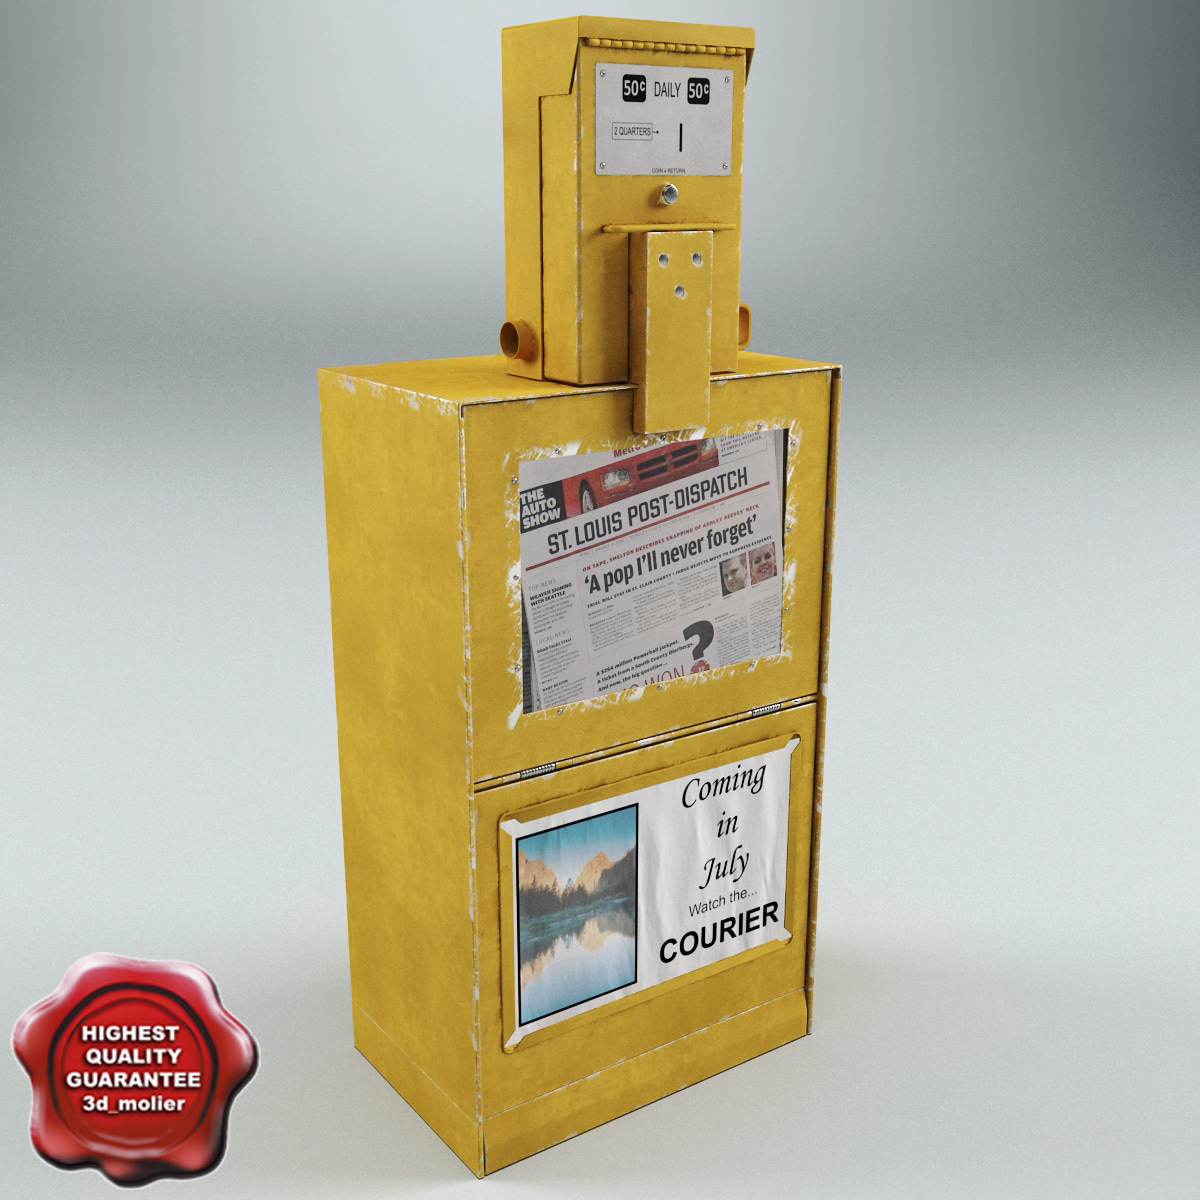 Newspaper_Street_Dispenser_00.jpg